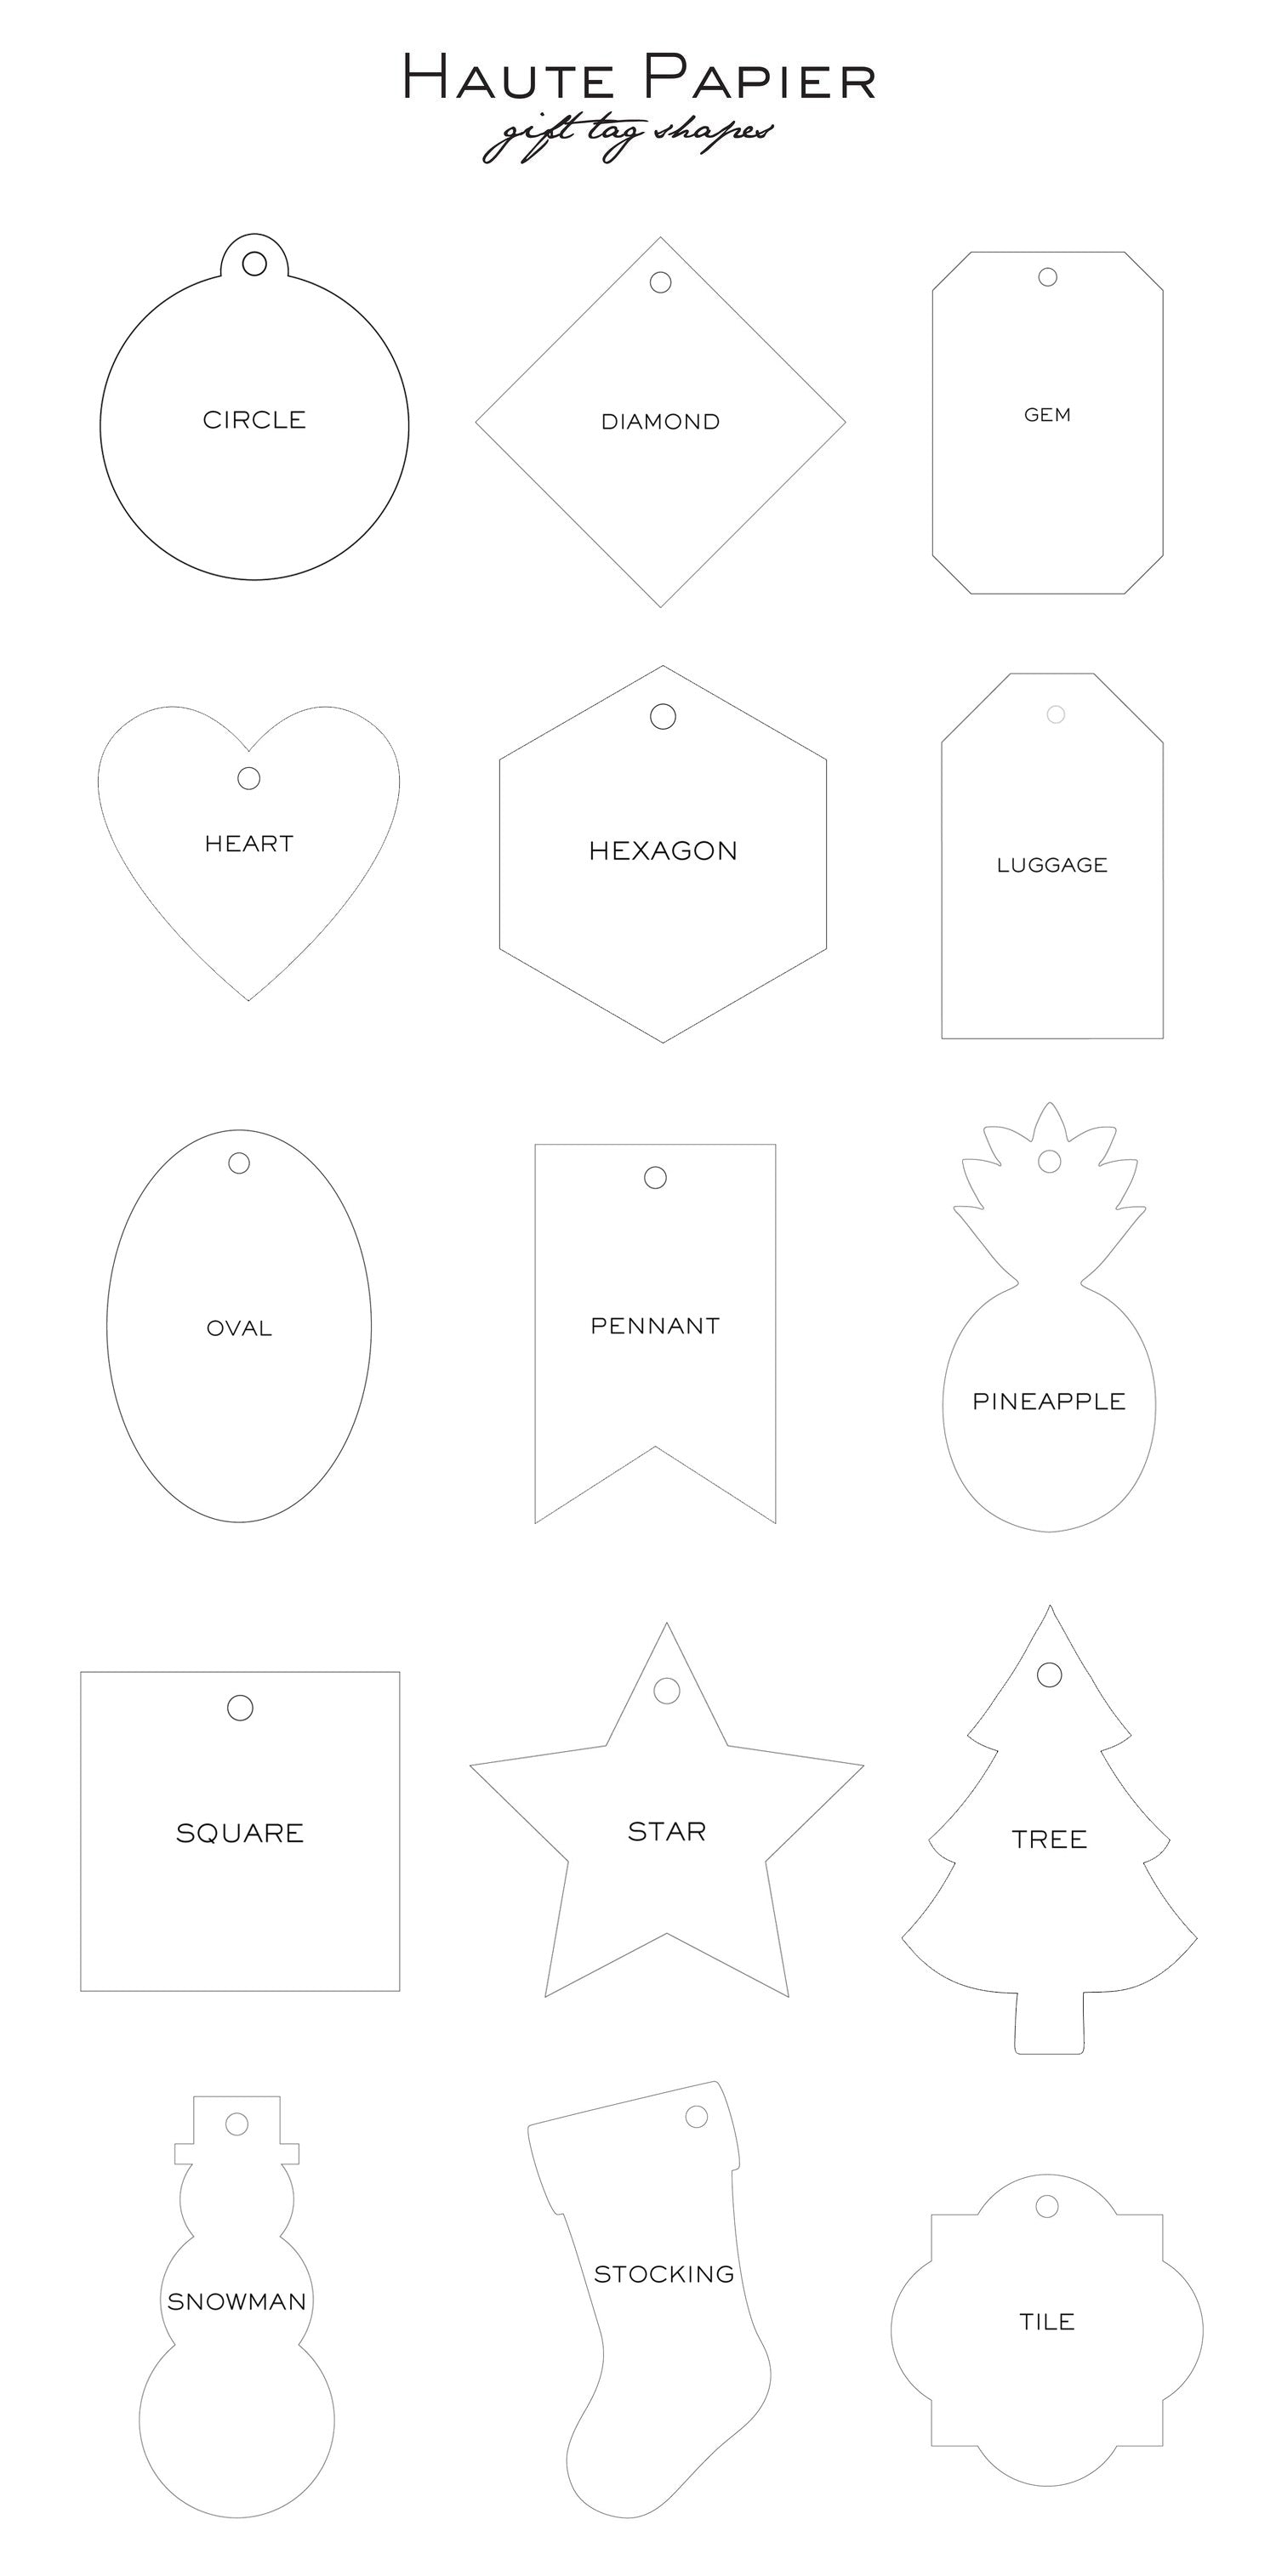 Haute Papier Gift Tag-T283 (Customizable)